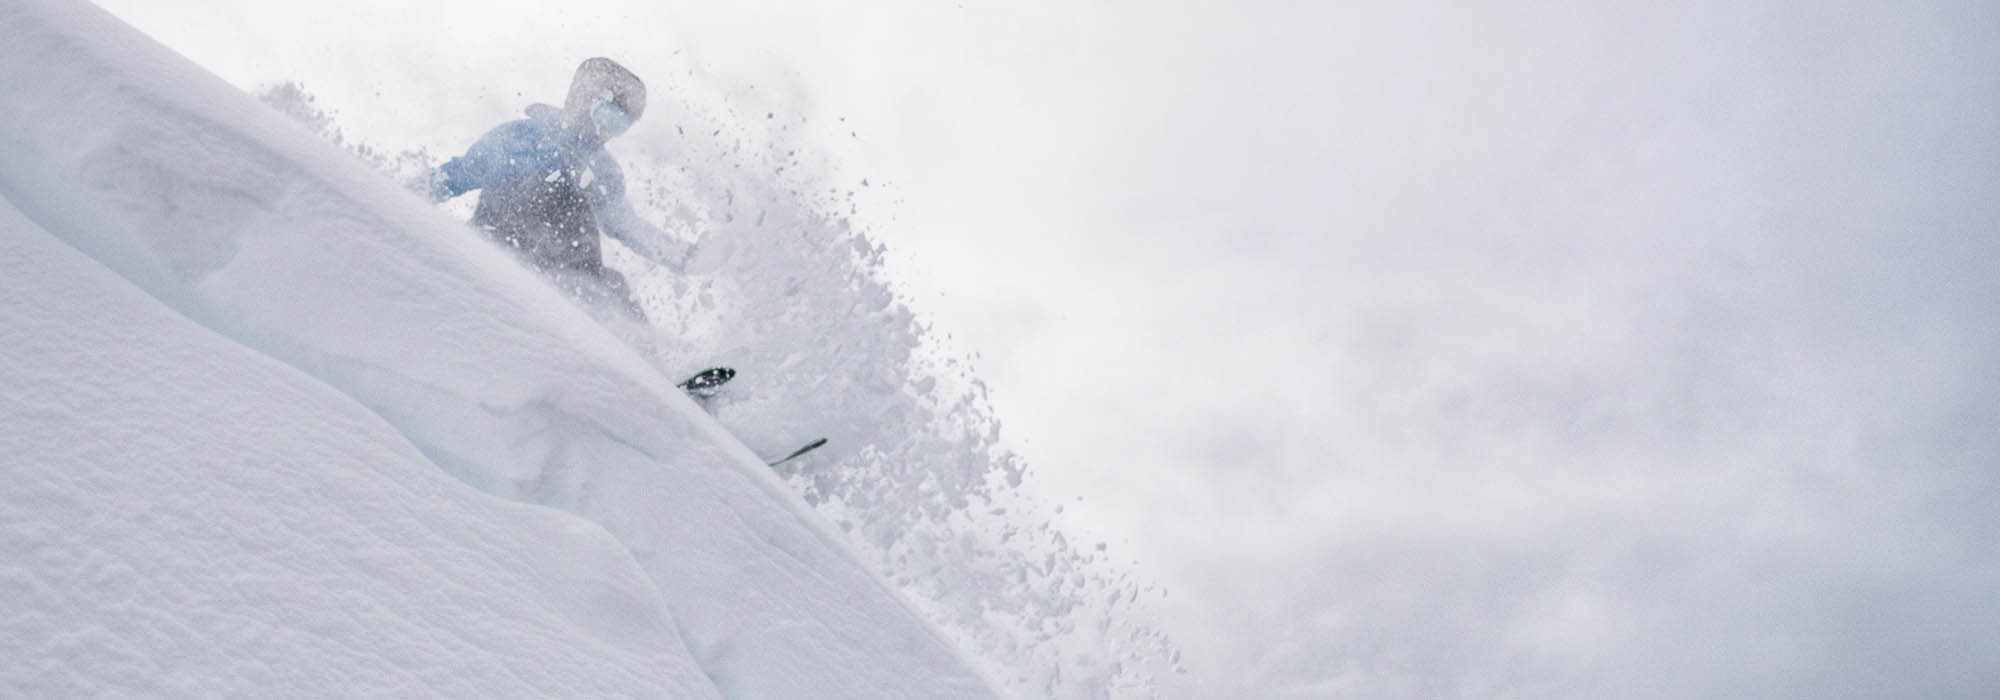 Cole Richardson skiing Lipalian Chutes at Lake Louise Ski Resort, Banff National Park.